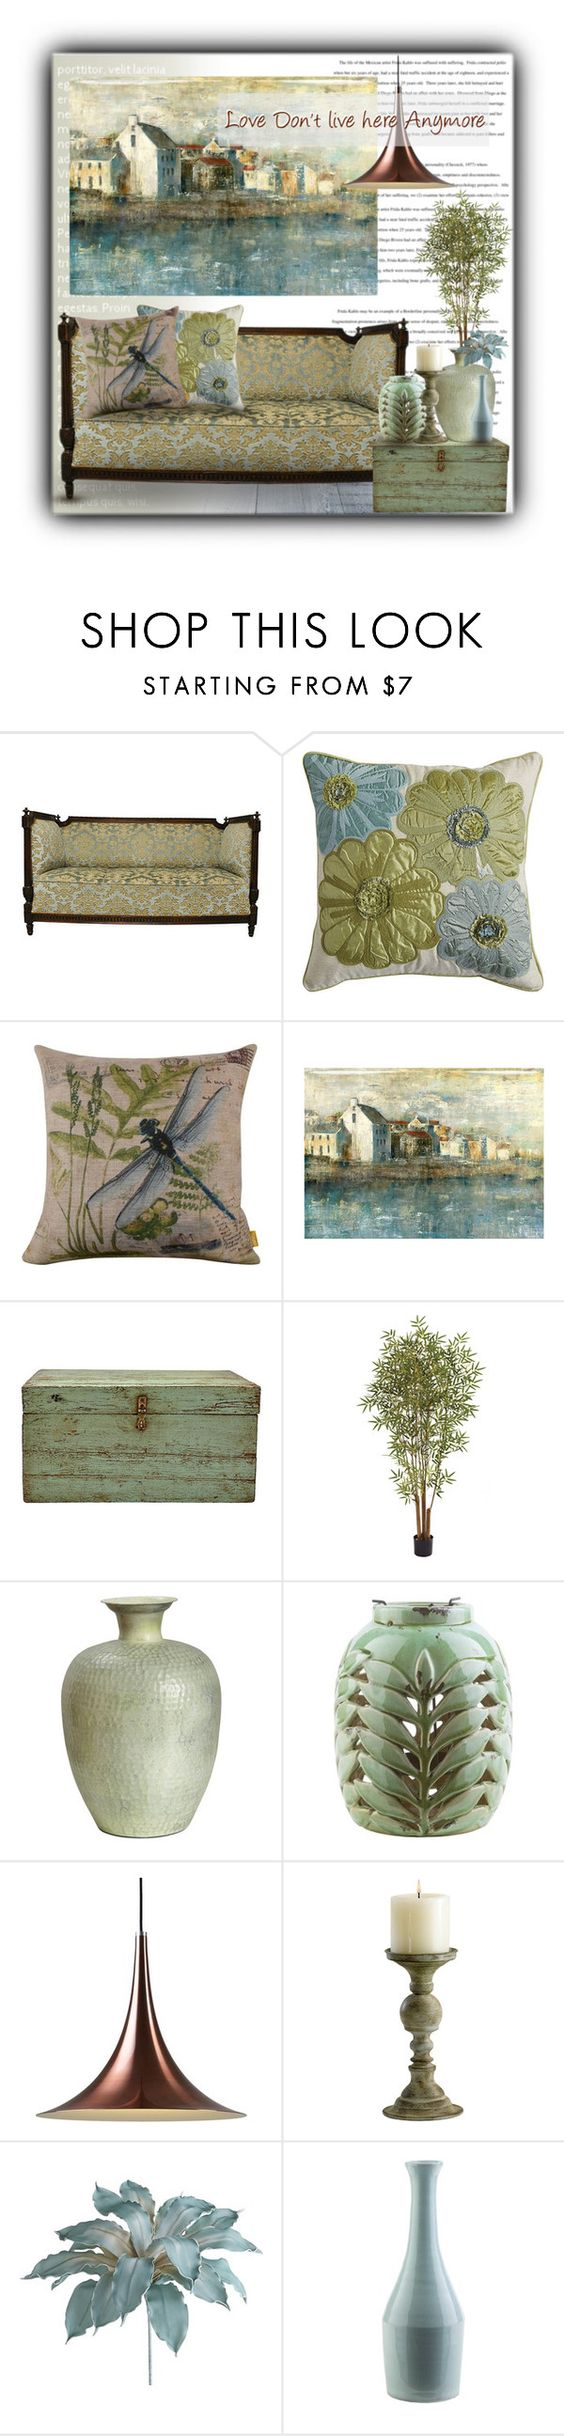 """Love don't live here anymore..."" by sapora ❤ liked on Polyvore featuring interior, interiors, interior design, home, home decor, interior decorating, Pier 1 Imports, Ballard Designs, Nearly Natural and Surya"